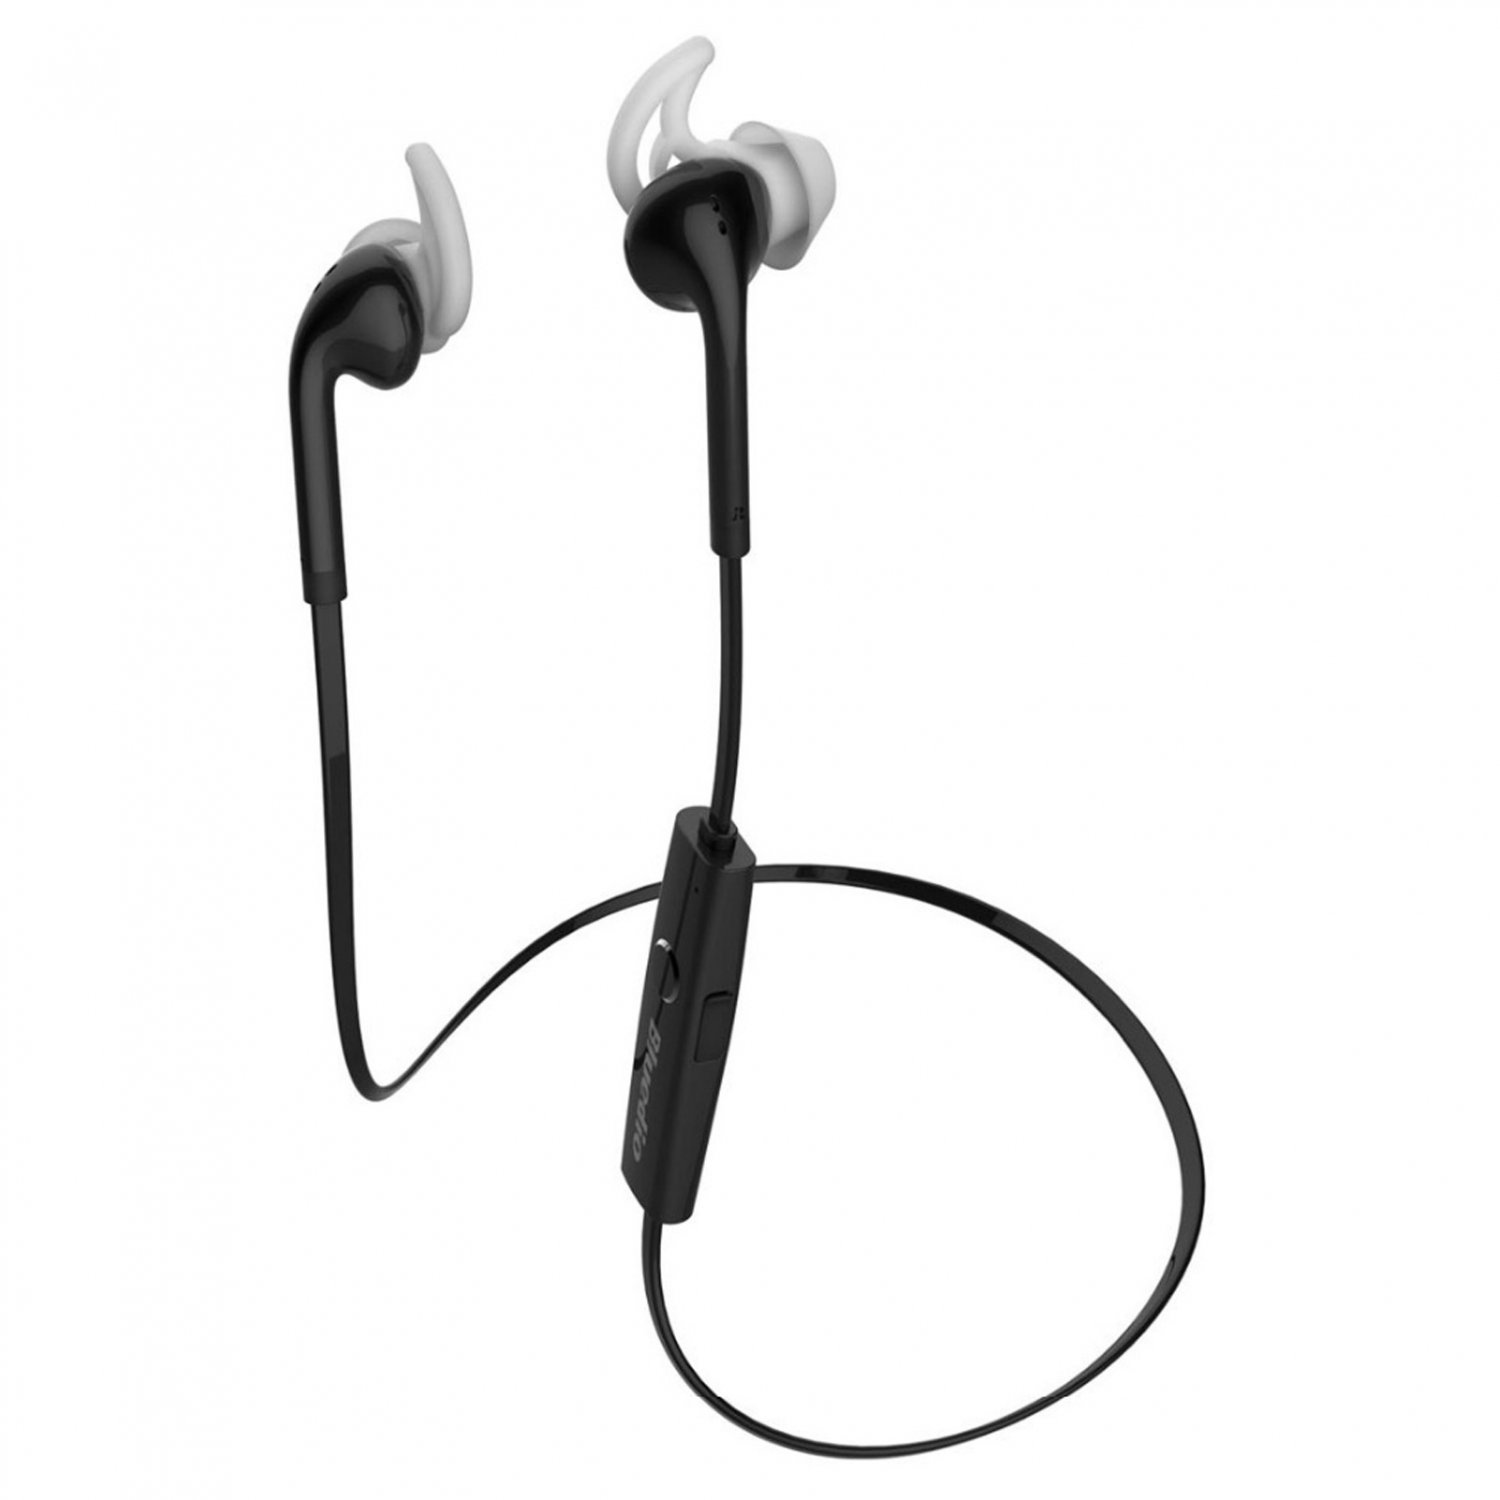 Earphones bluetooth apple - bluetooth earbuds black apple